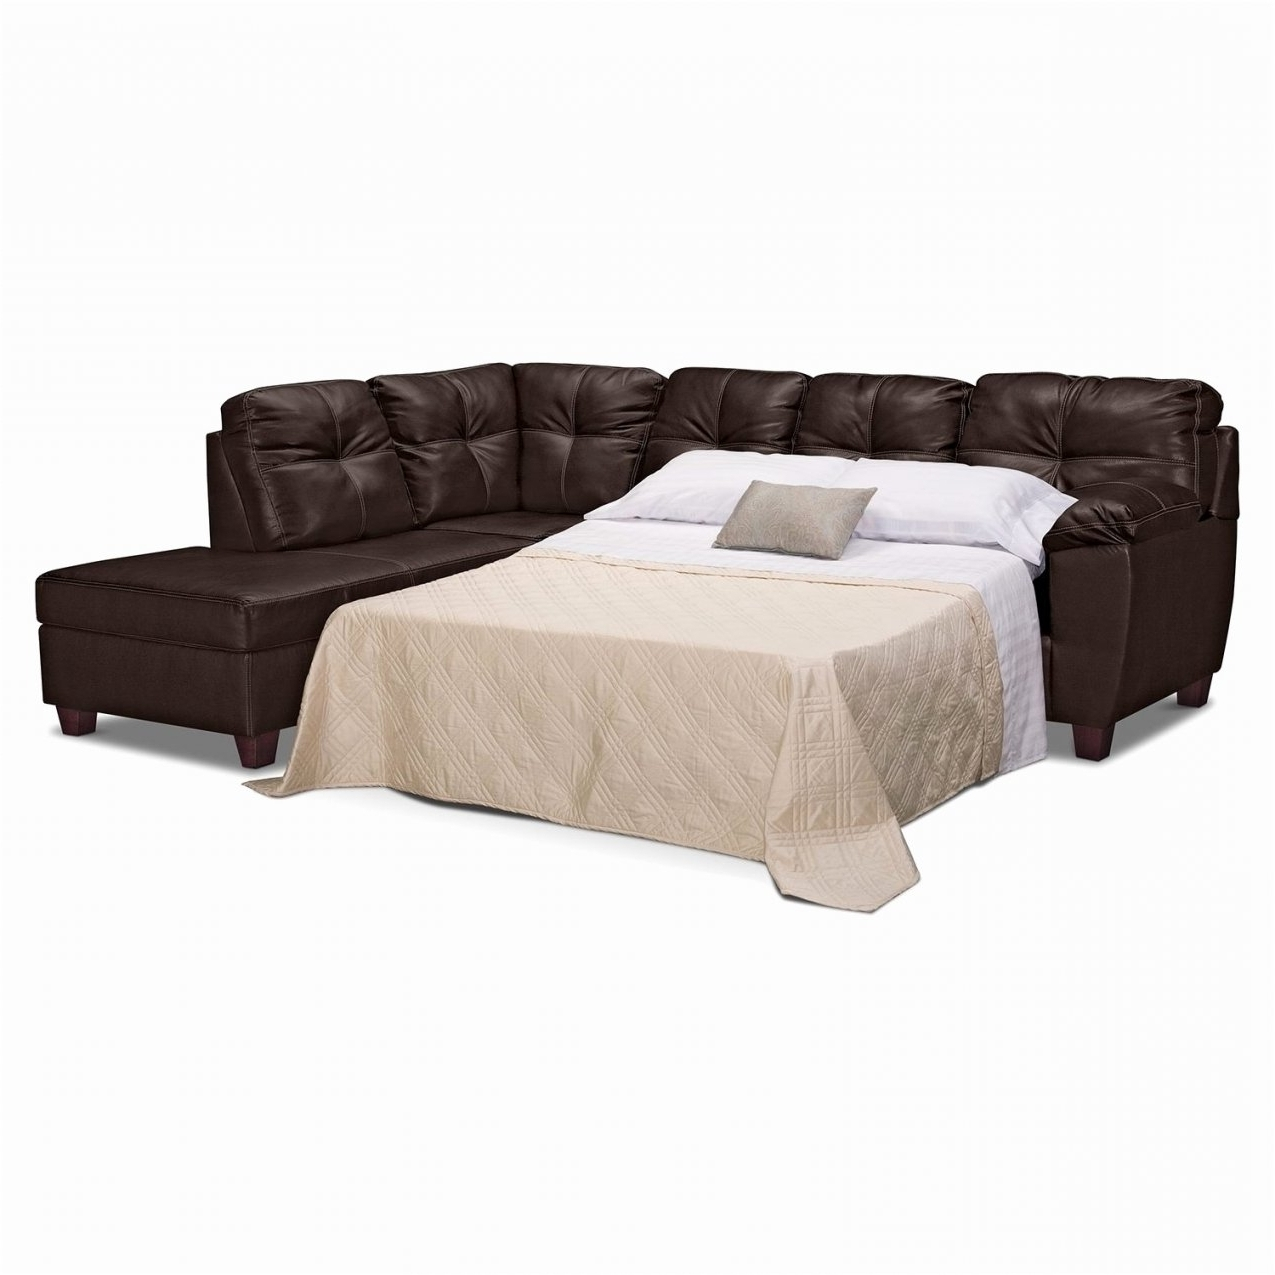 2017 Ikea Sectional Sleeper Sofas In Sleeper Sofa Ikea Sectional Sofa Bed Fabric Sectional With Leather (View 8 of 15)